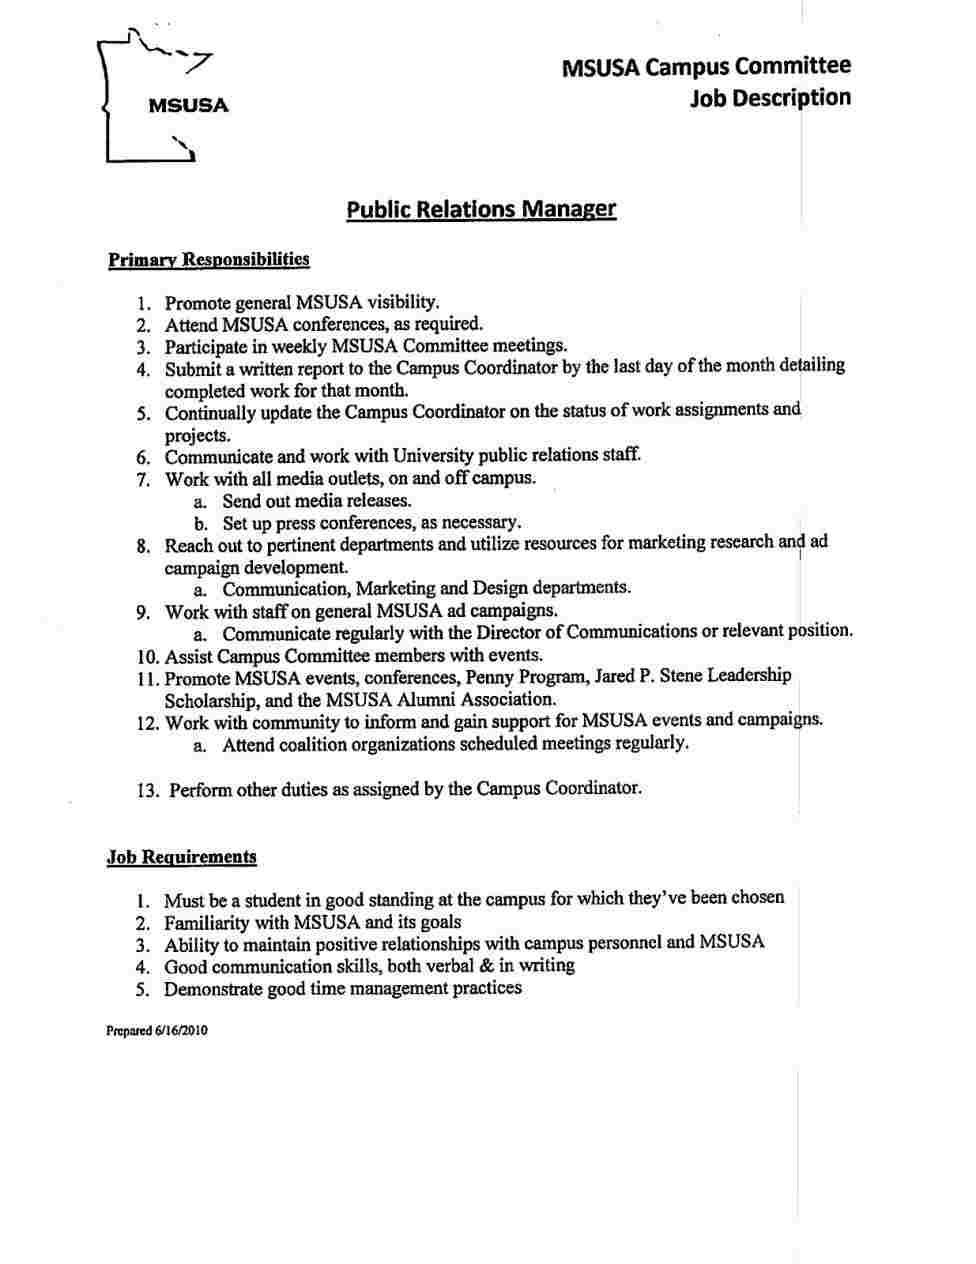 resume templates leadership position skills examples for free printable pmo manager demi Resume Resume For Leadership Position